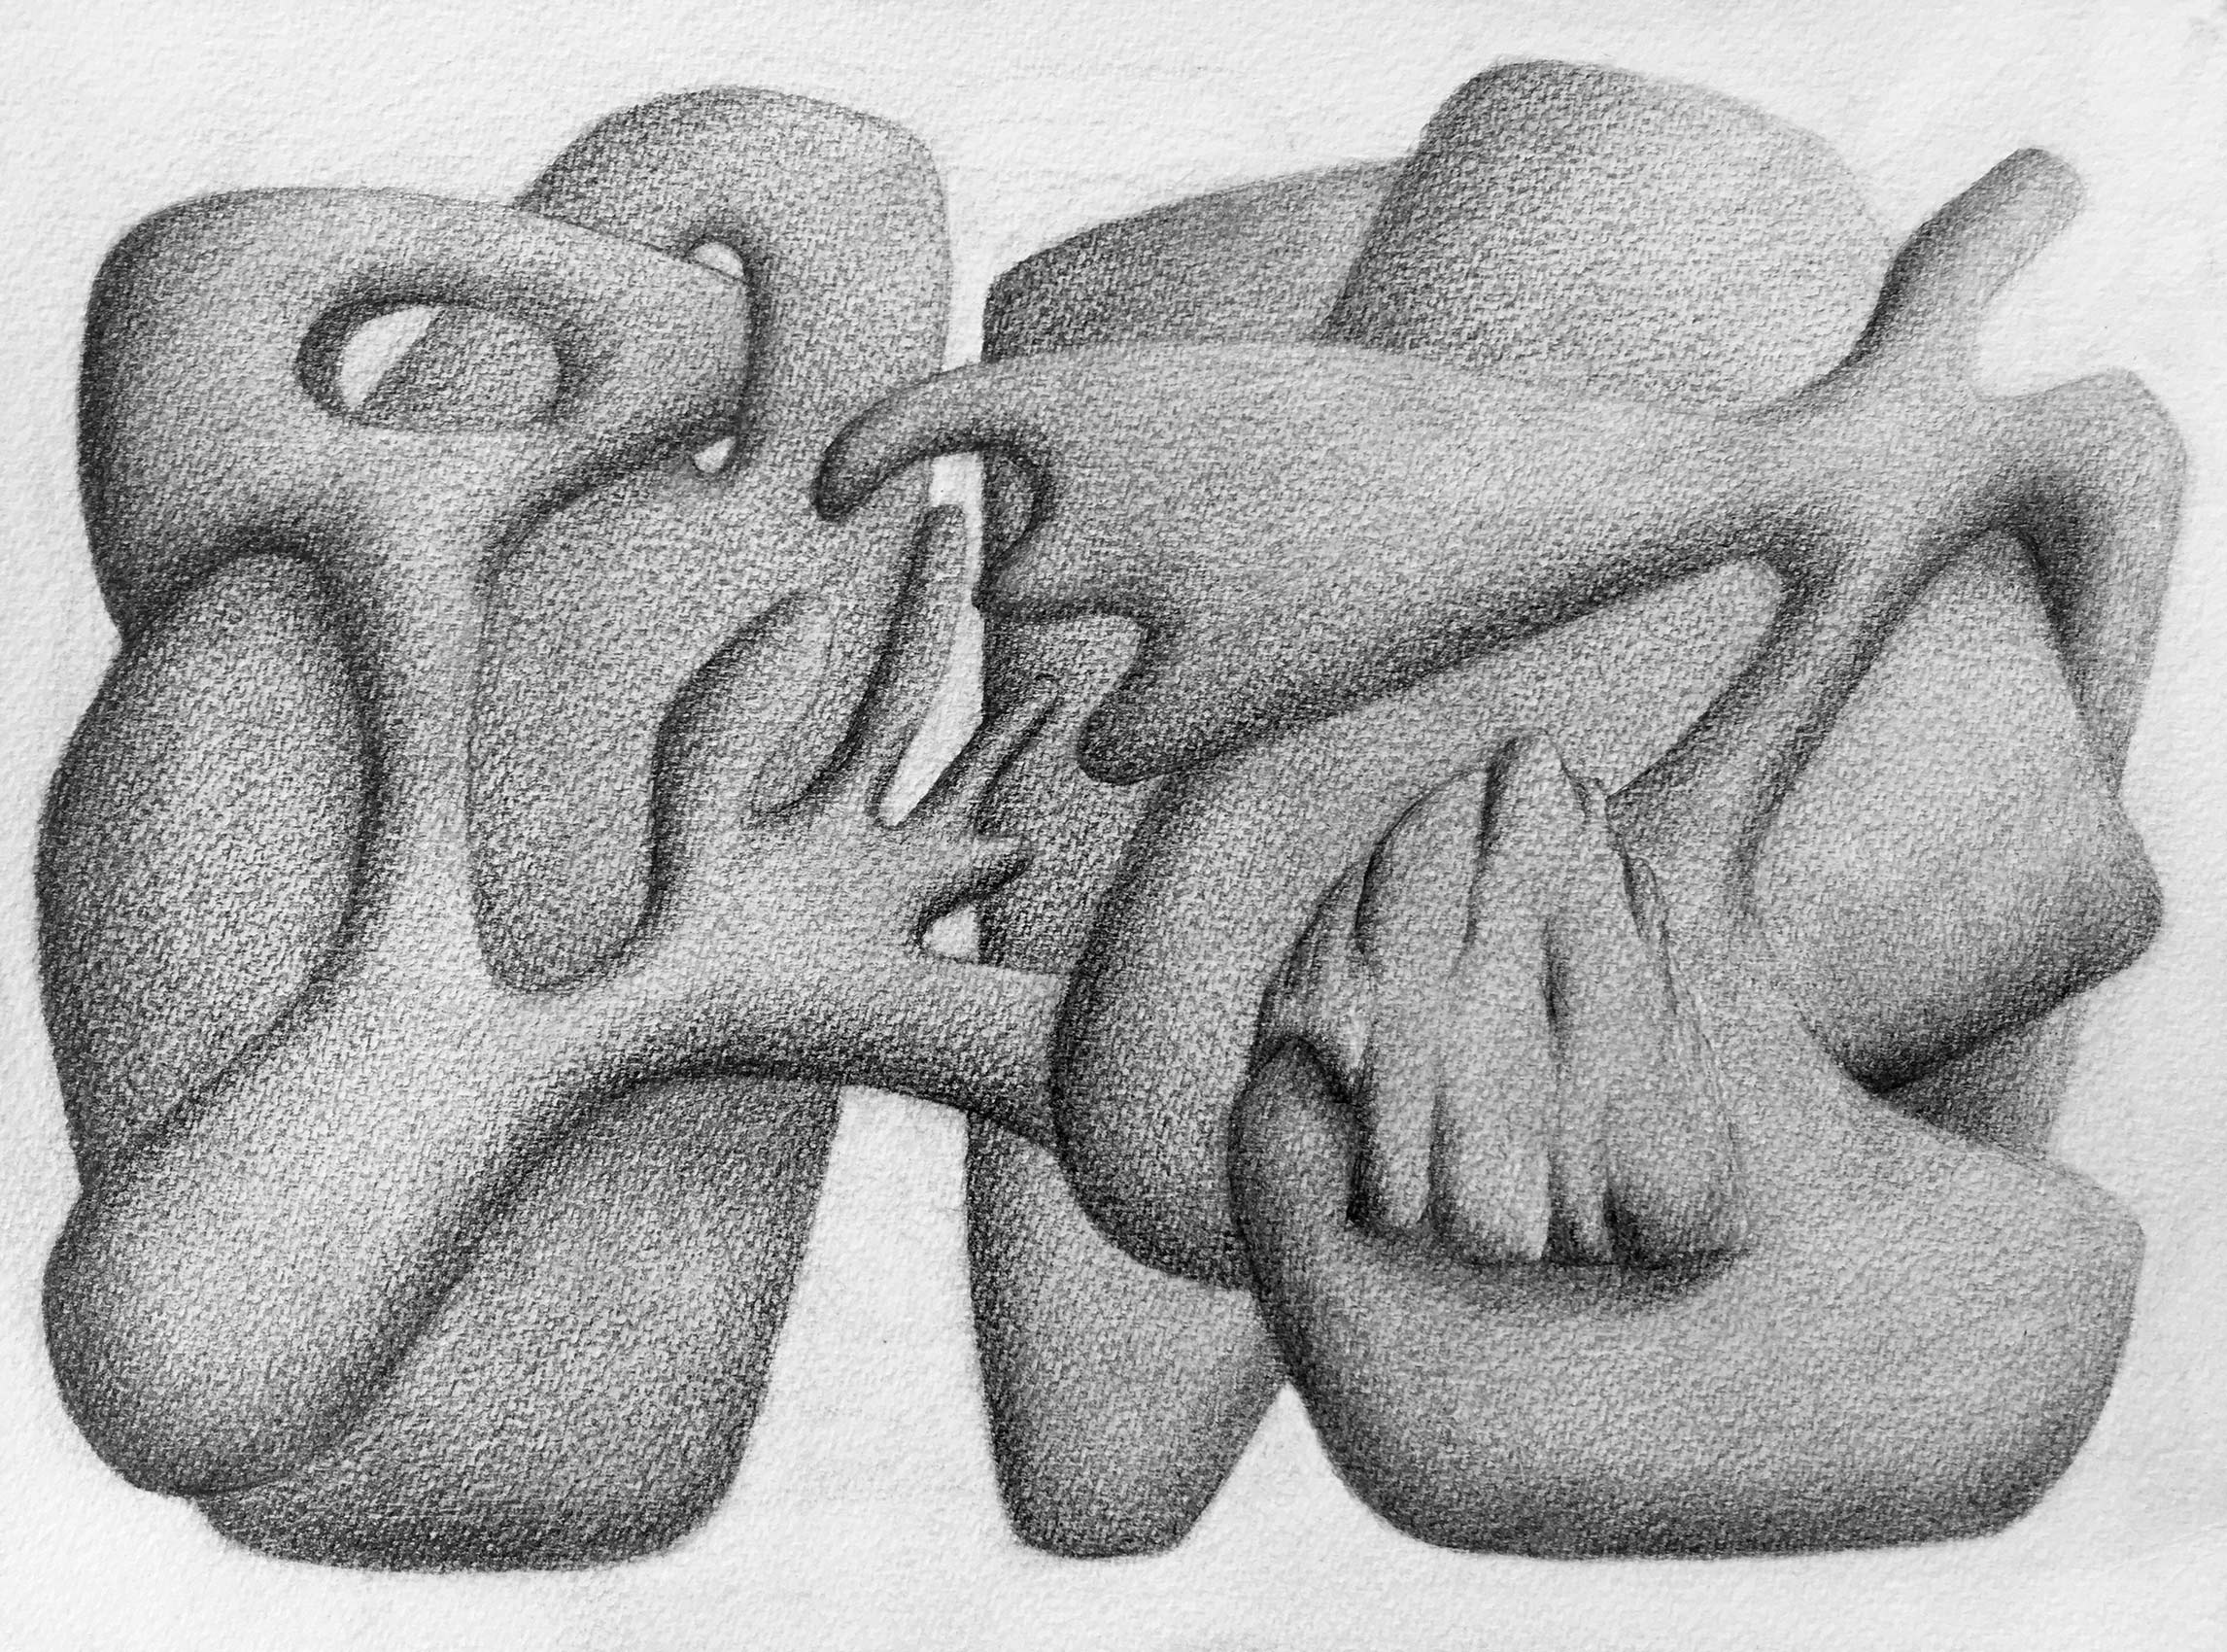 [No Title], N°DNT6,  2019, Pencil on paper, 24cm by 32cm, 2019 ©Pascal Demeester